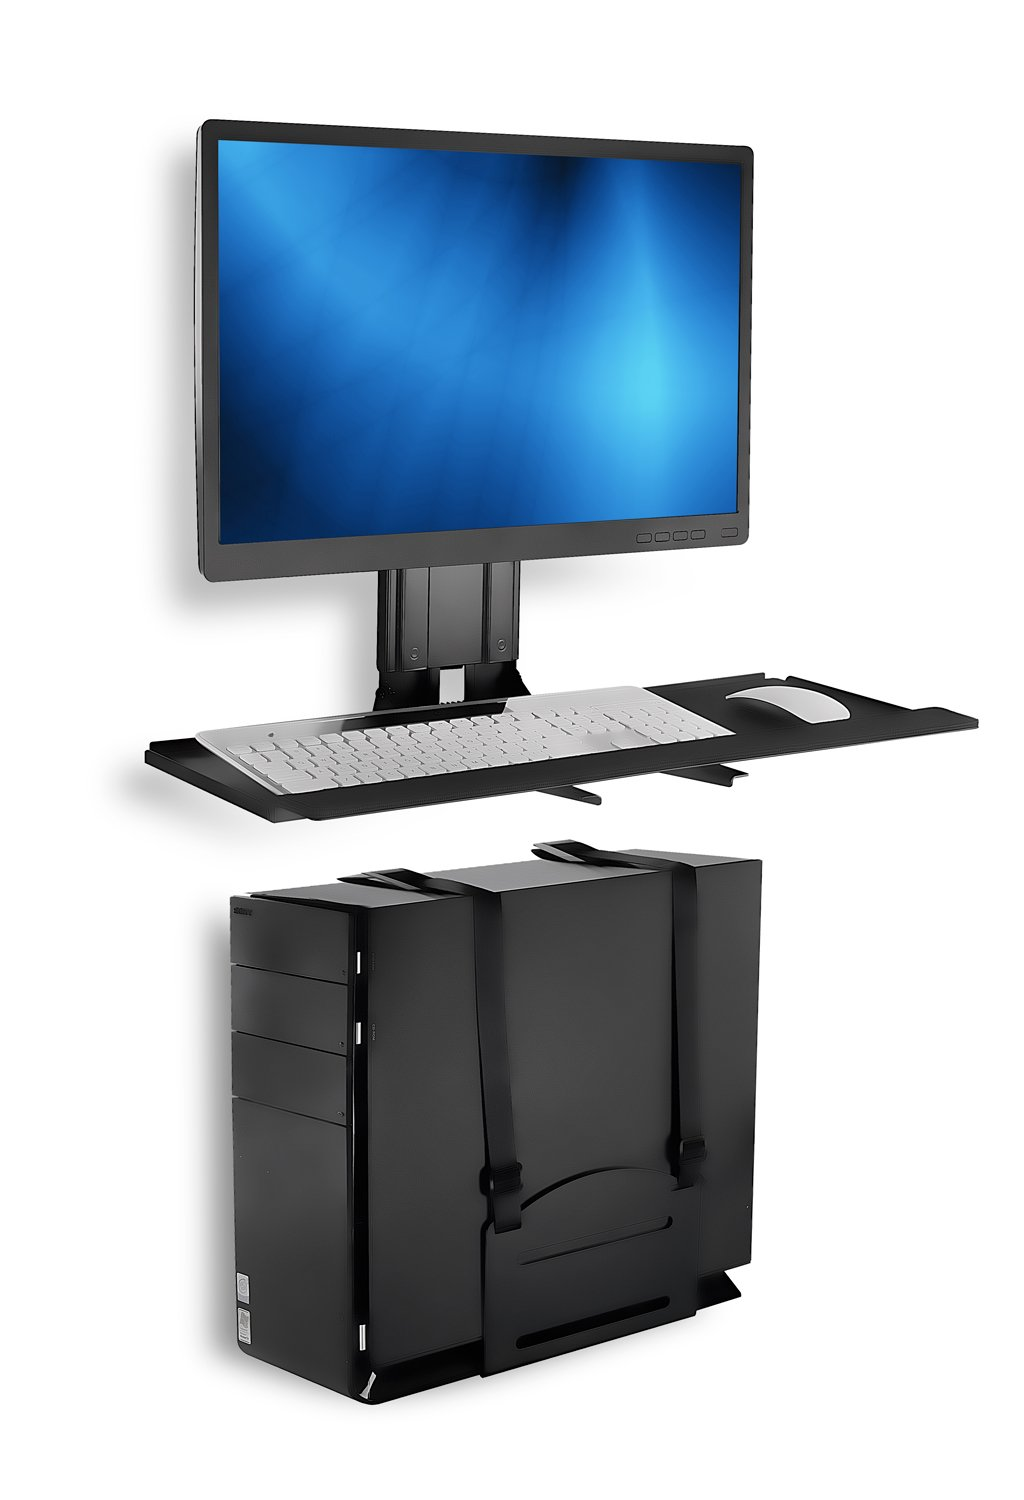 Mount-It! Monitor and Keyboard Wall Mount with CPU Holder, Height Adjustable Standing VESA Keyboard Tray, 25 Inch Wide Platform with Mouse Pad (MI-7919)